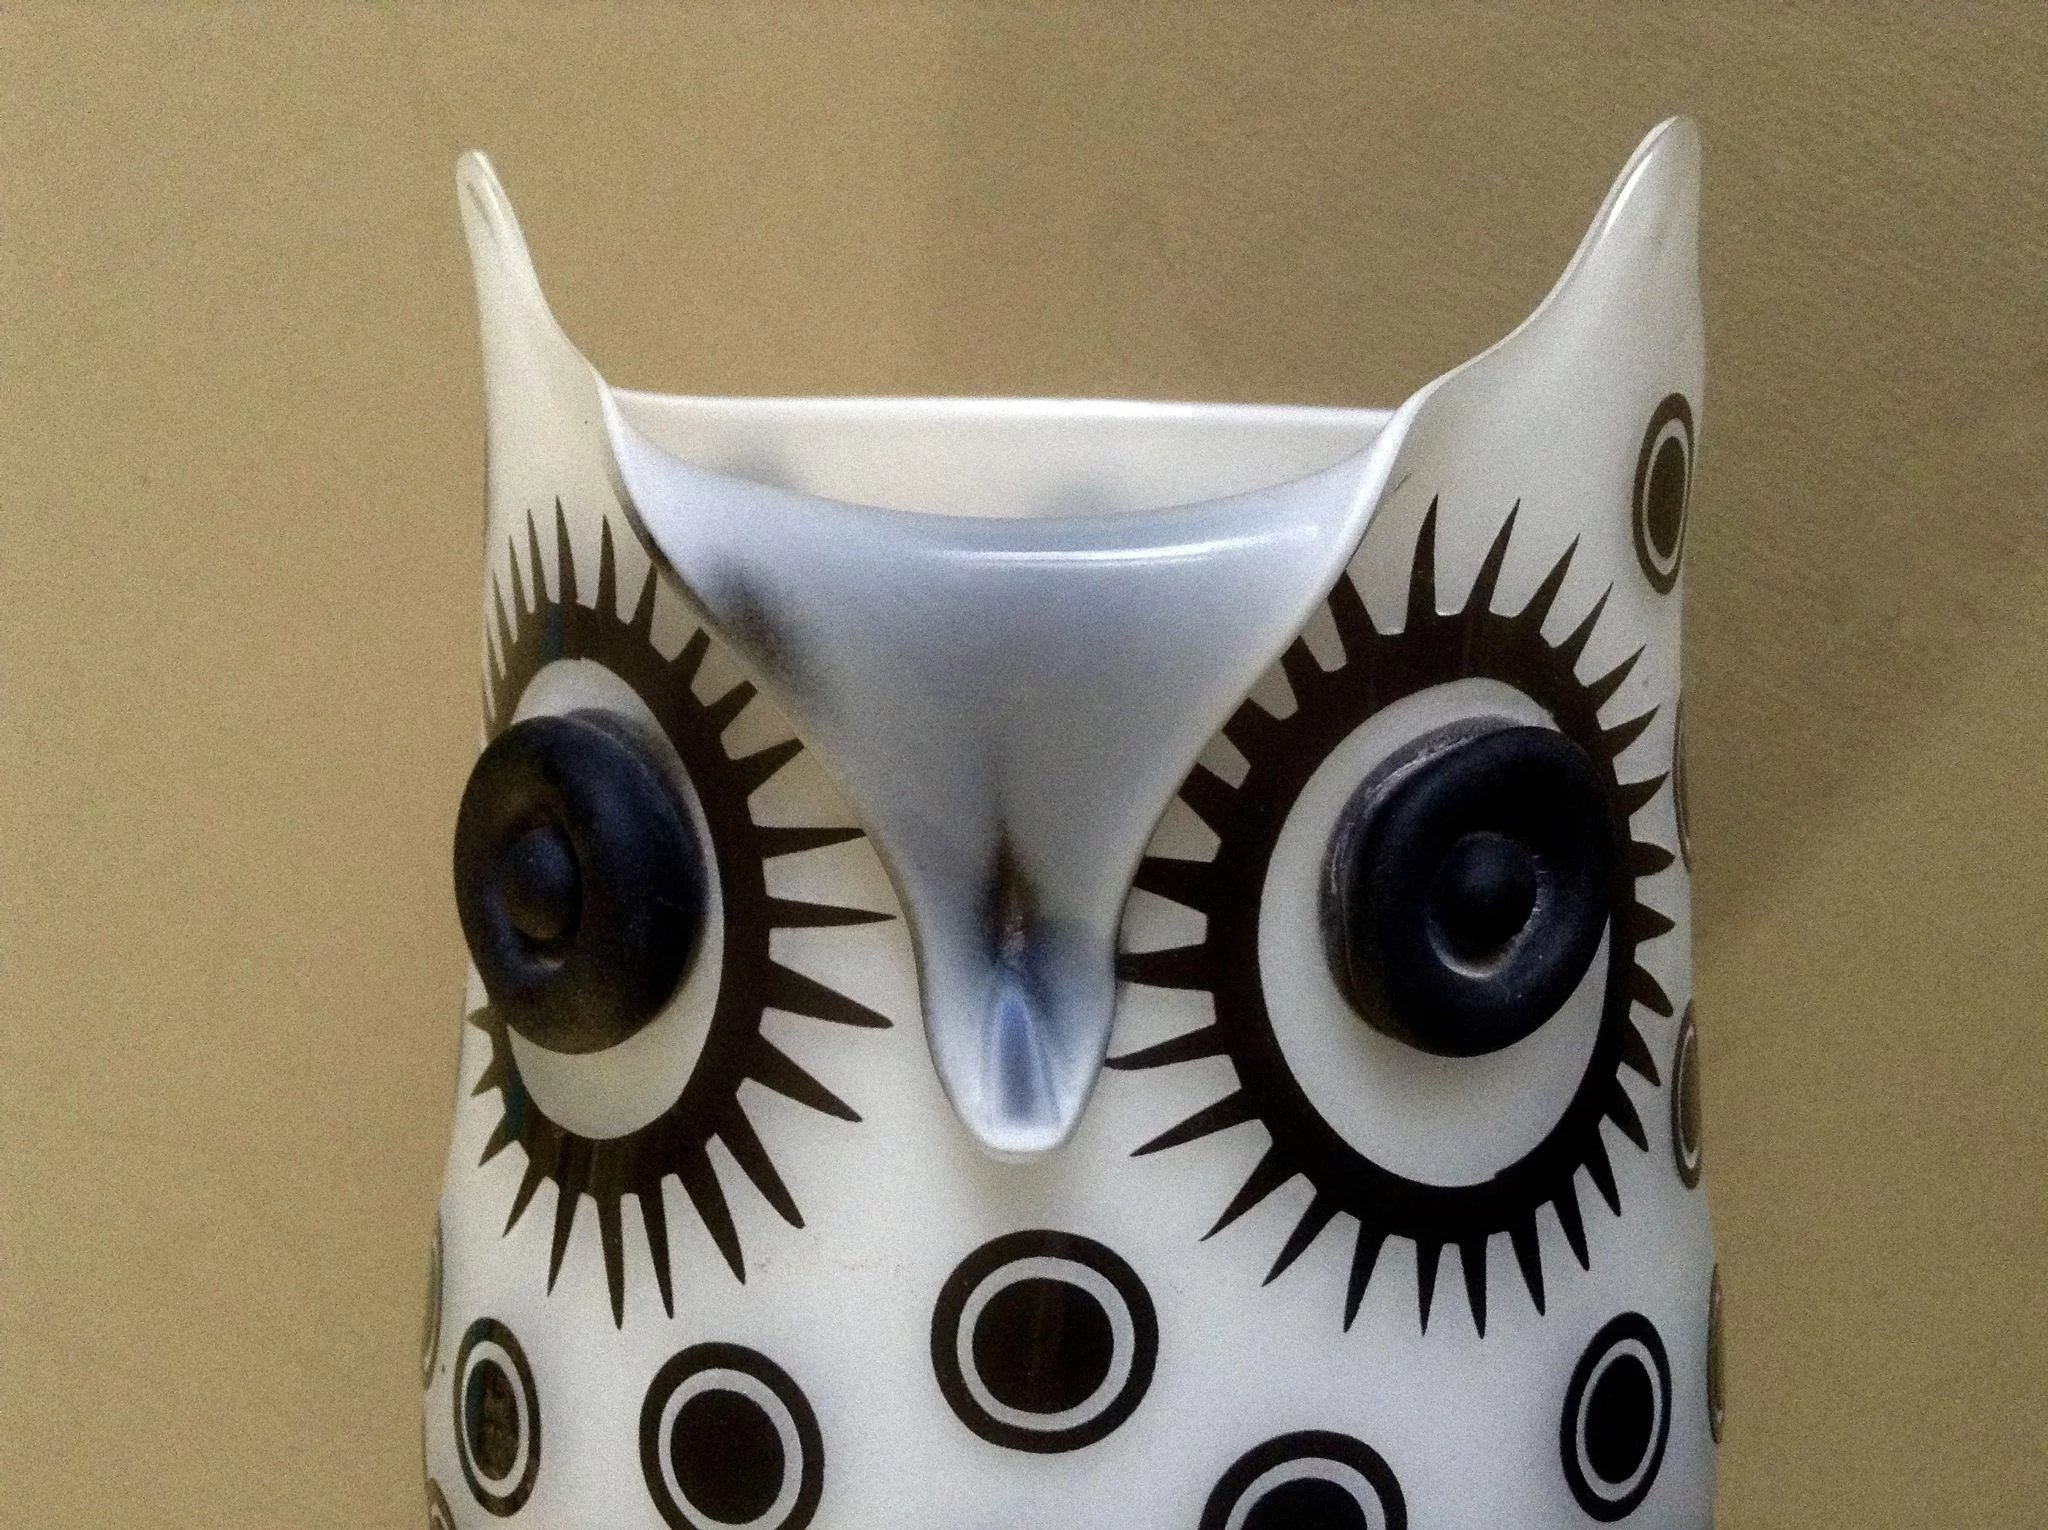 Vintage art glass white owl vase black raised polka dots white owl vase black raised polka dots click to expand reviewsmspy